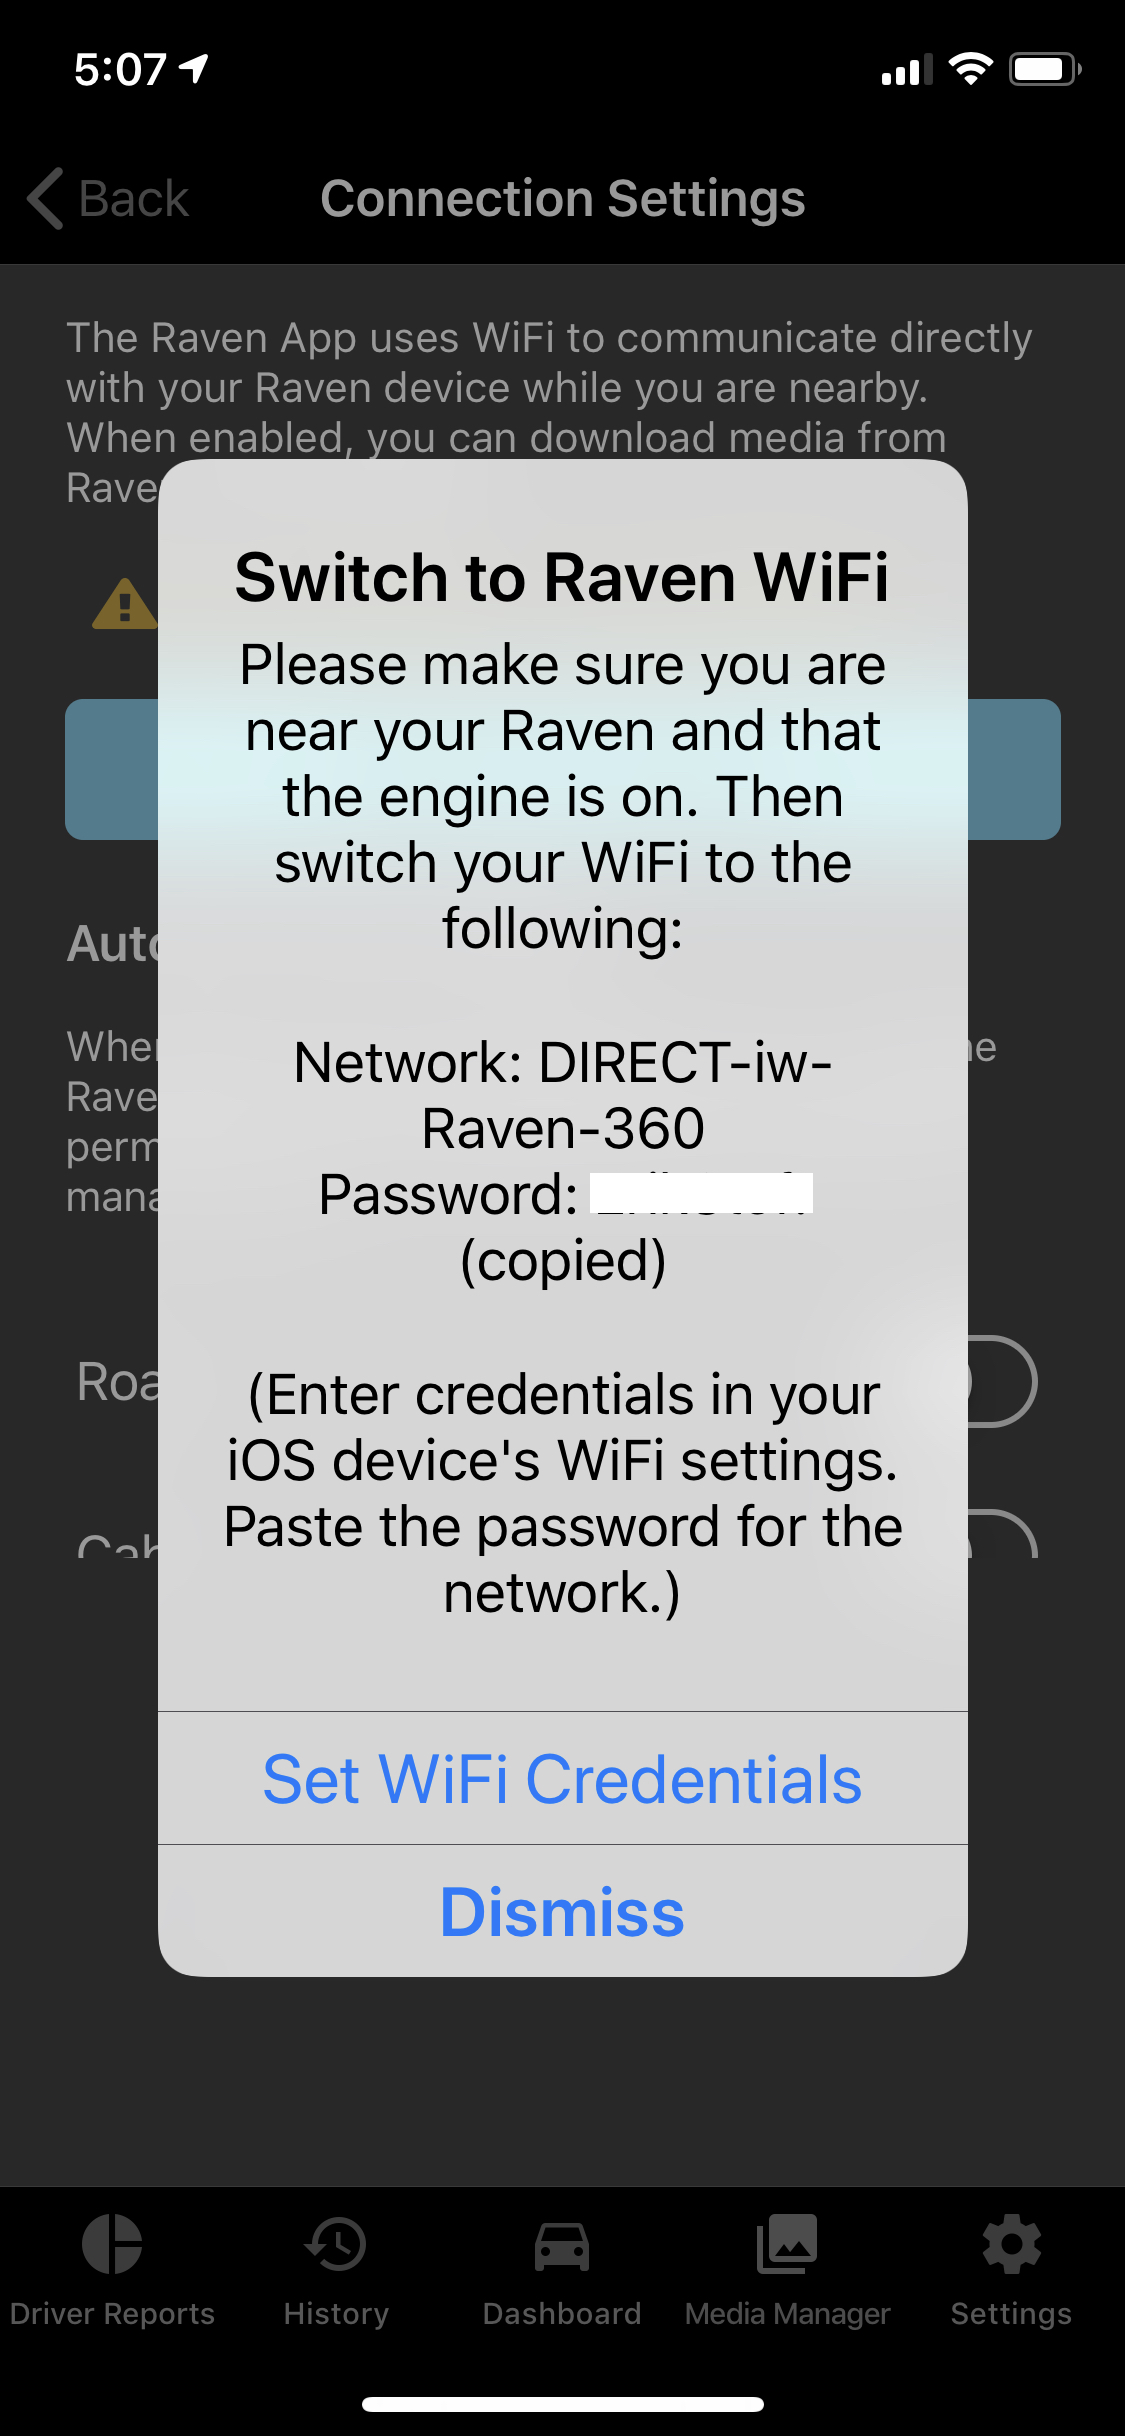 Rave_iPhone_WiFi.png